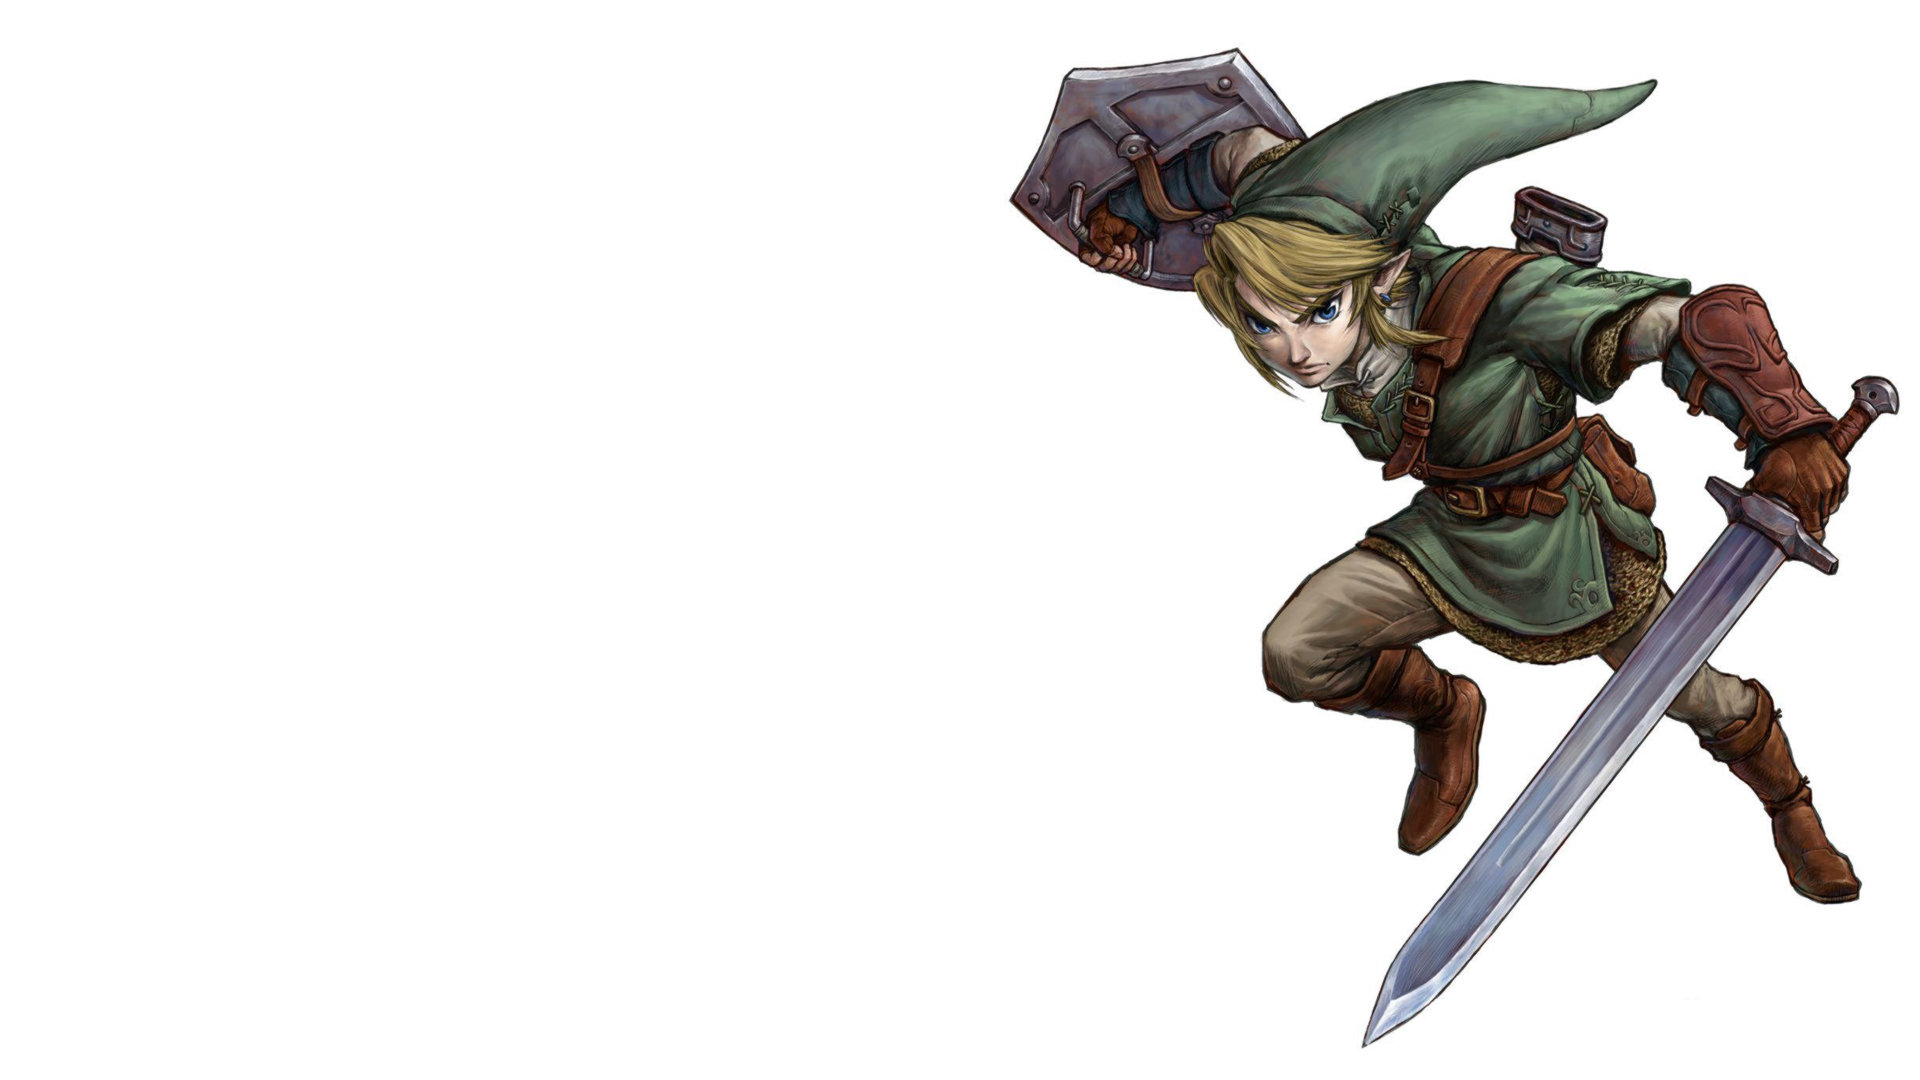 Free The Legend Of Zelda Ocarina Of Time High Quality